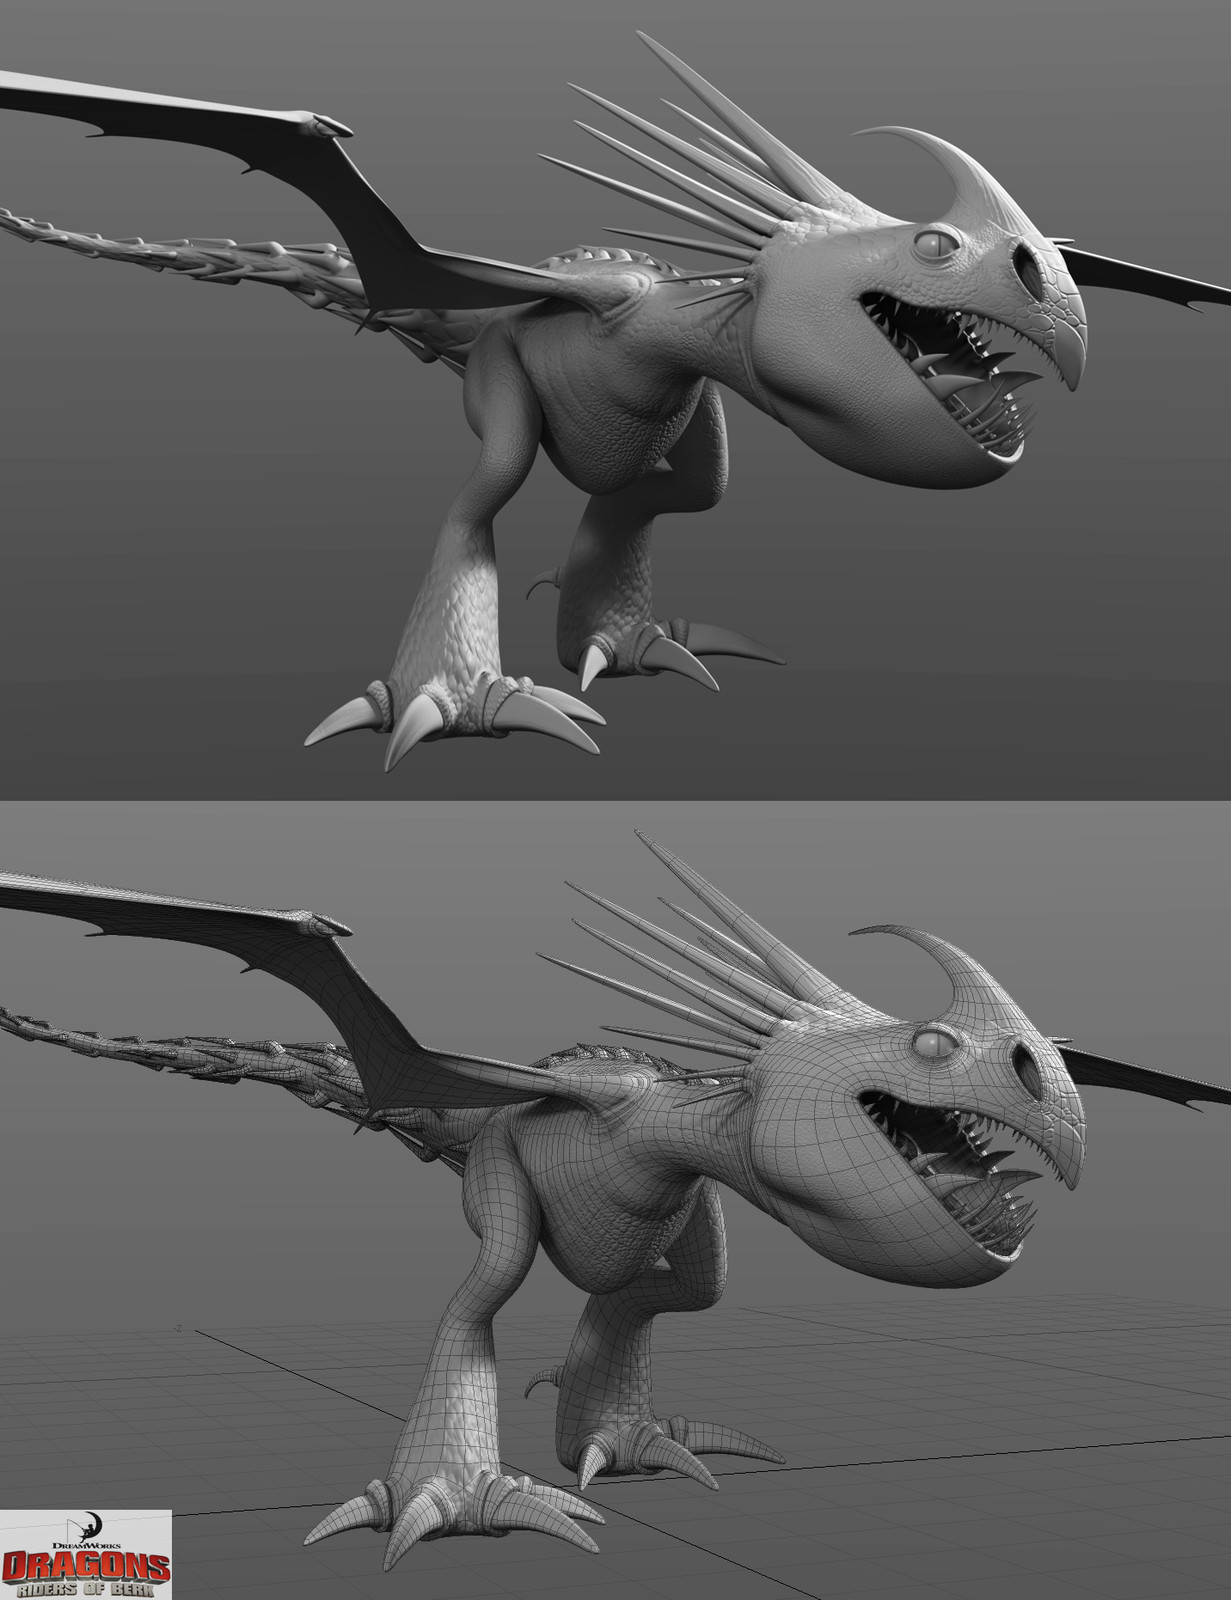 Stormfly with Normal Map and Stormfly with wireframe for DreamWorks Animation - Dragons: Riders of Berk.